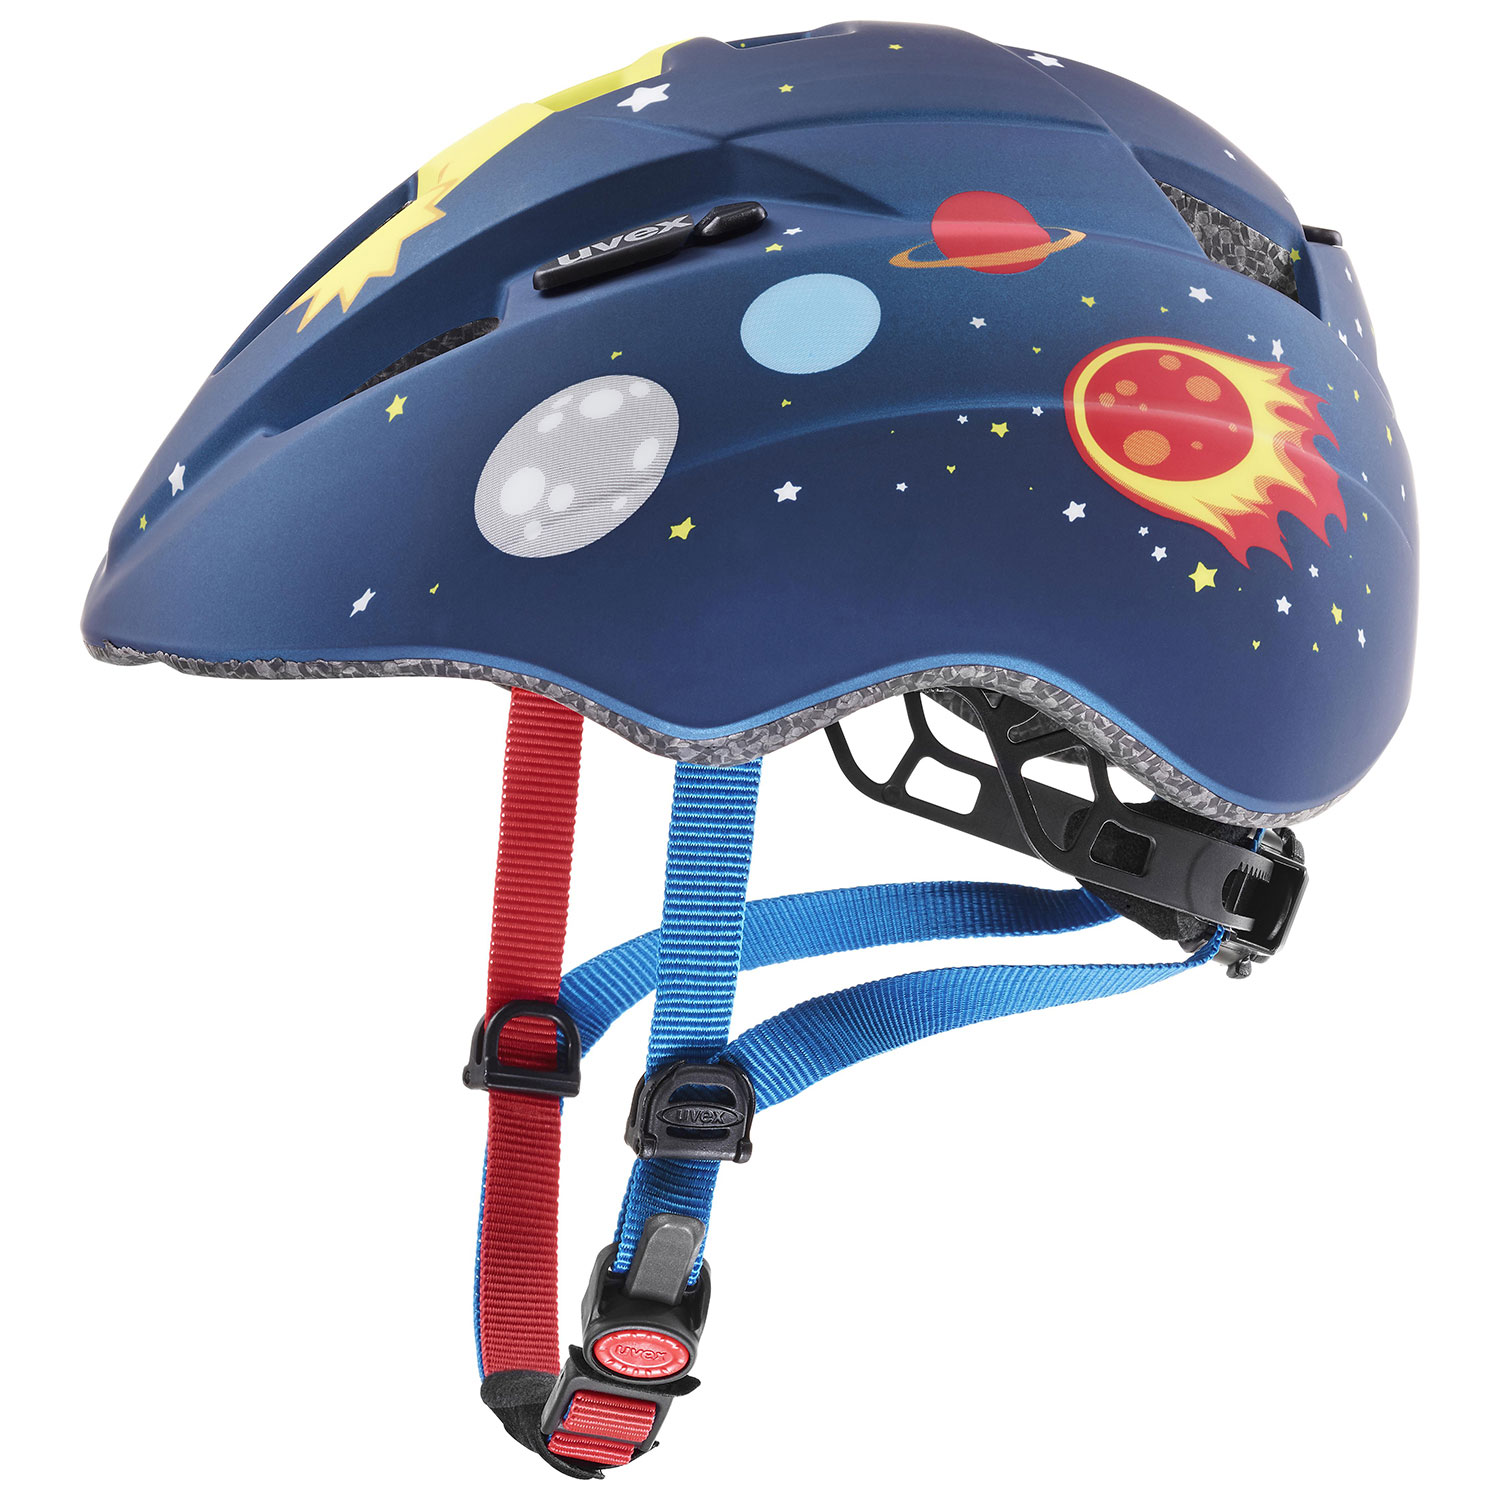 2021 UVEX HELMA KID 2 CC, DARK BLUE ROCKET MAT (46-52) Množ. Uni